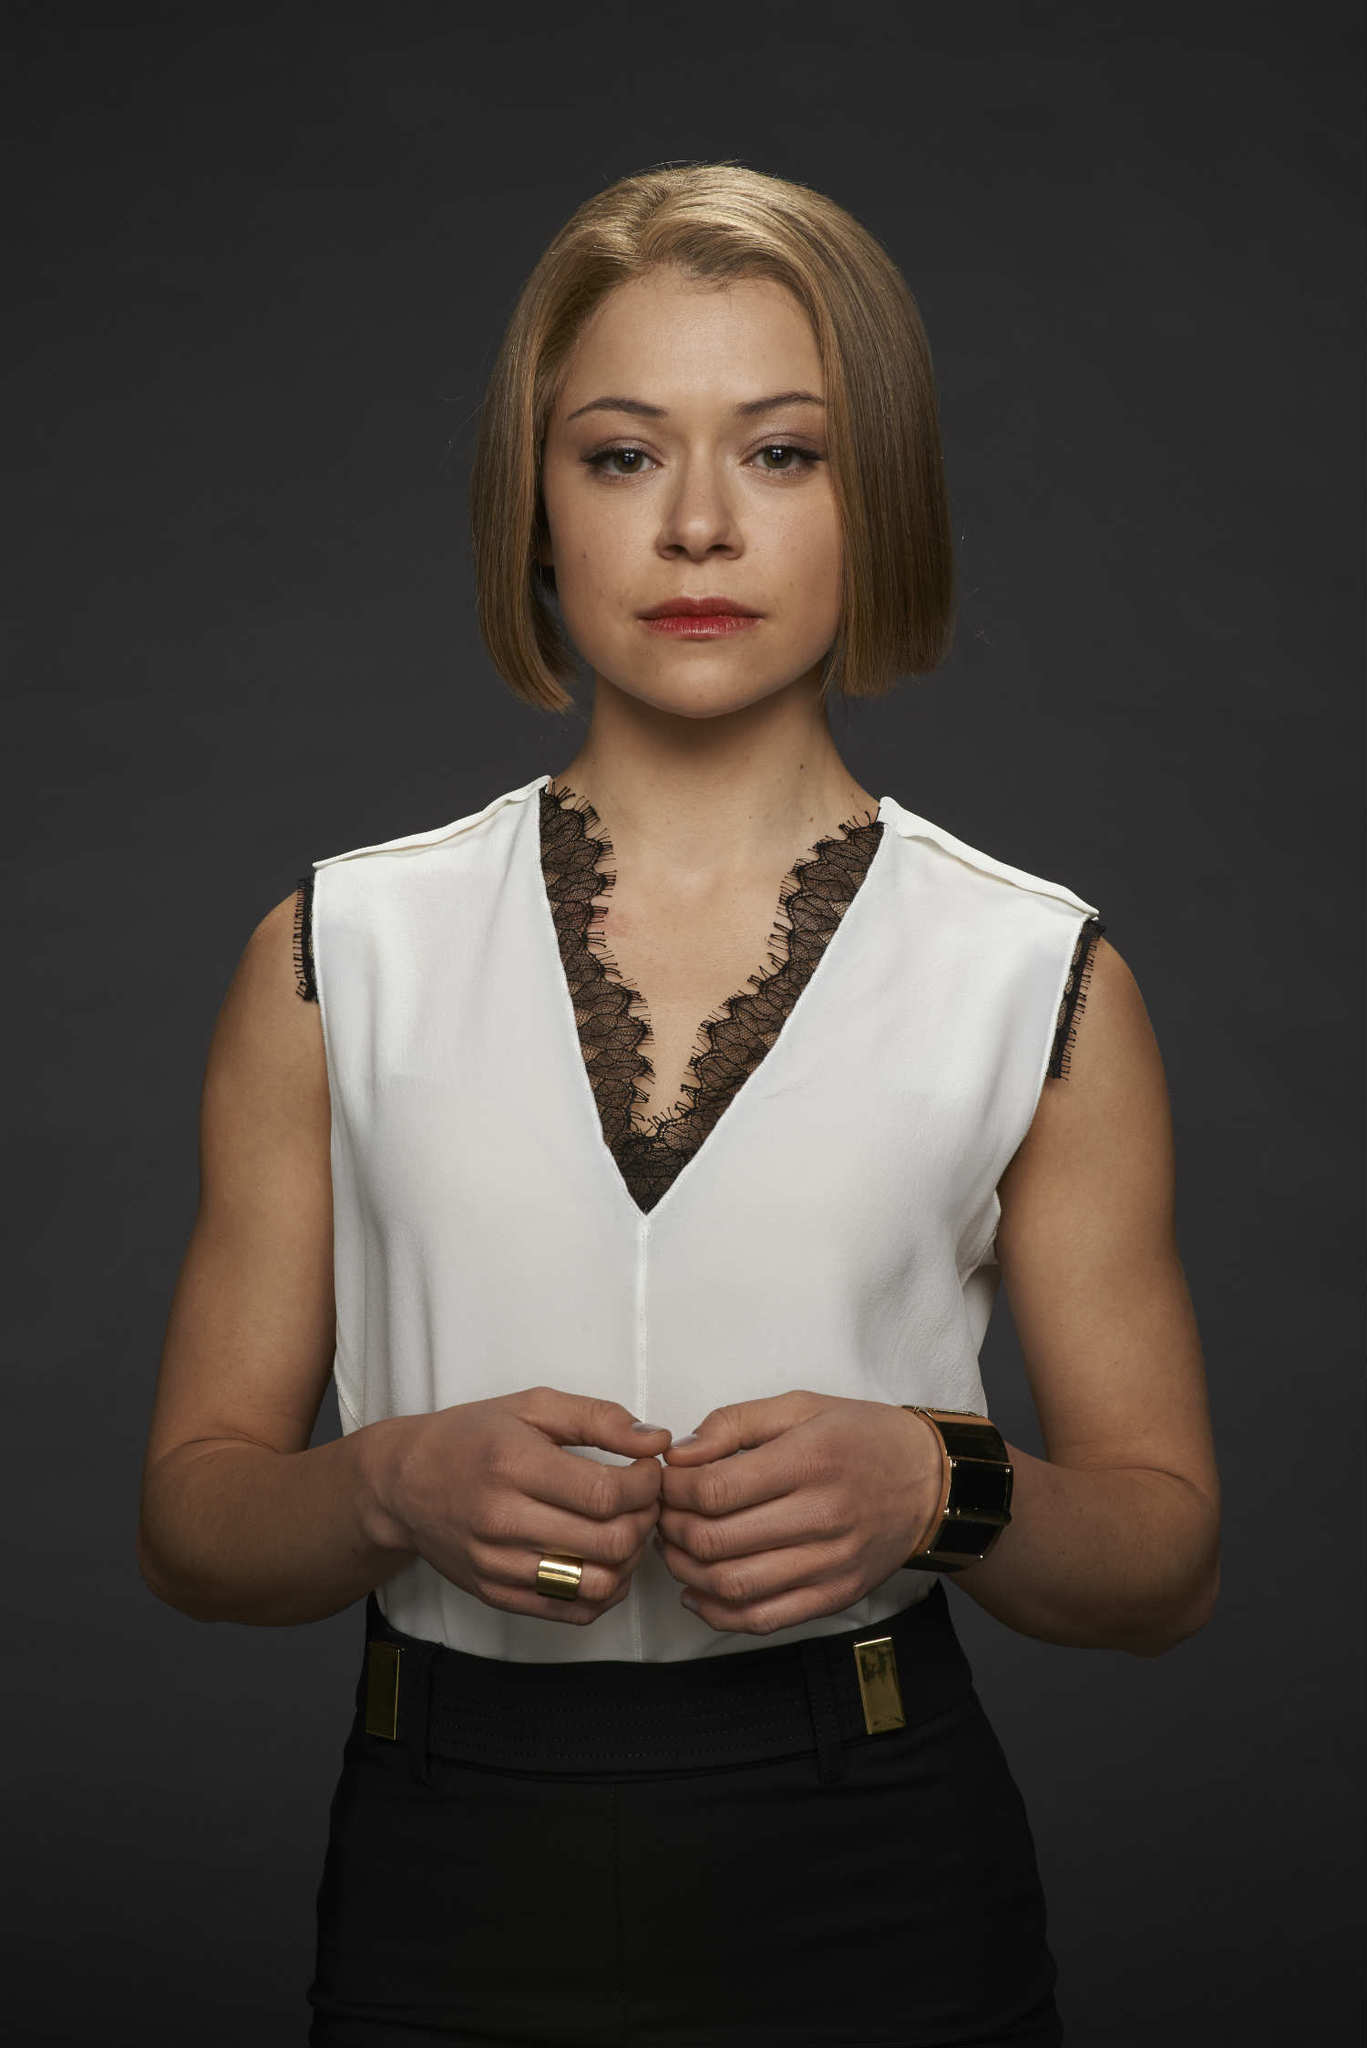 zap-orphan-black-season-2-posters-photos-20140-014